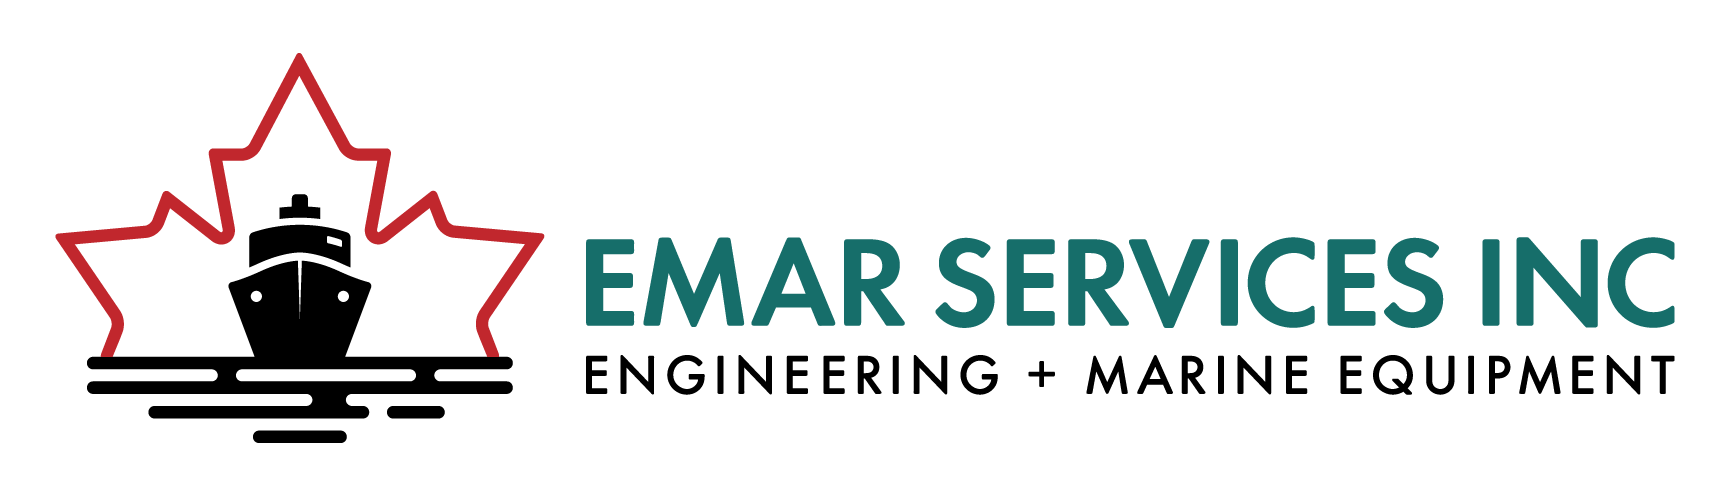 Marine Equipment Design and Manufacturing | Emar Services, Inc.